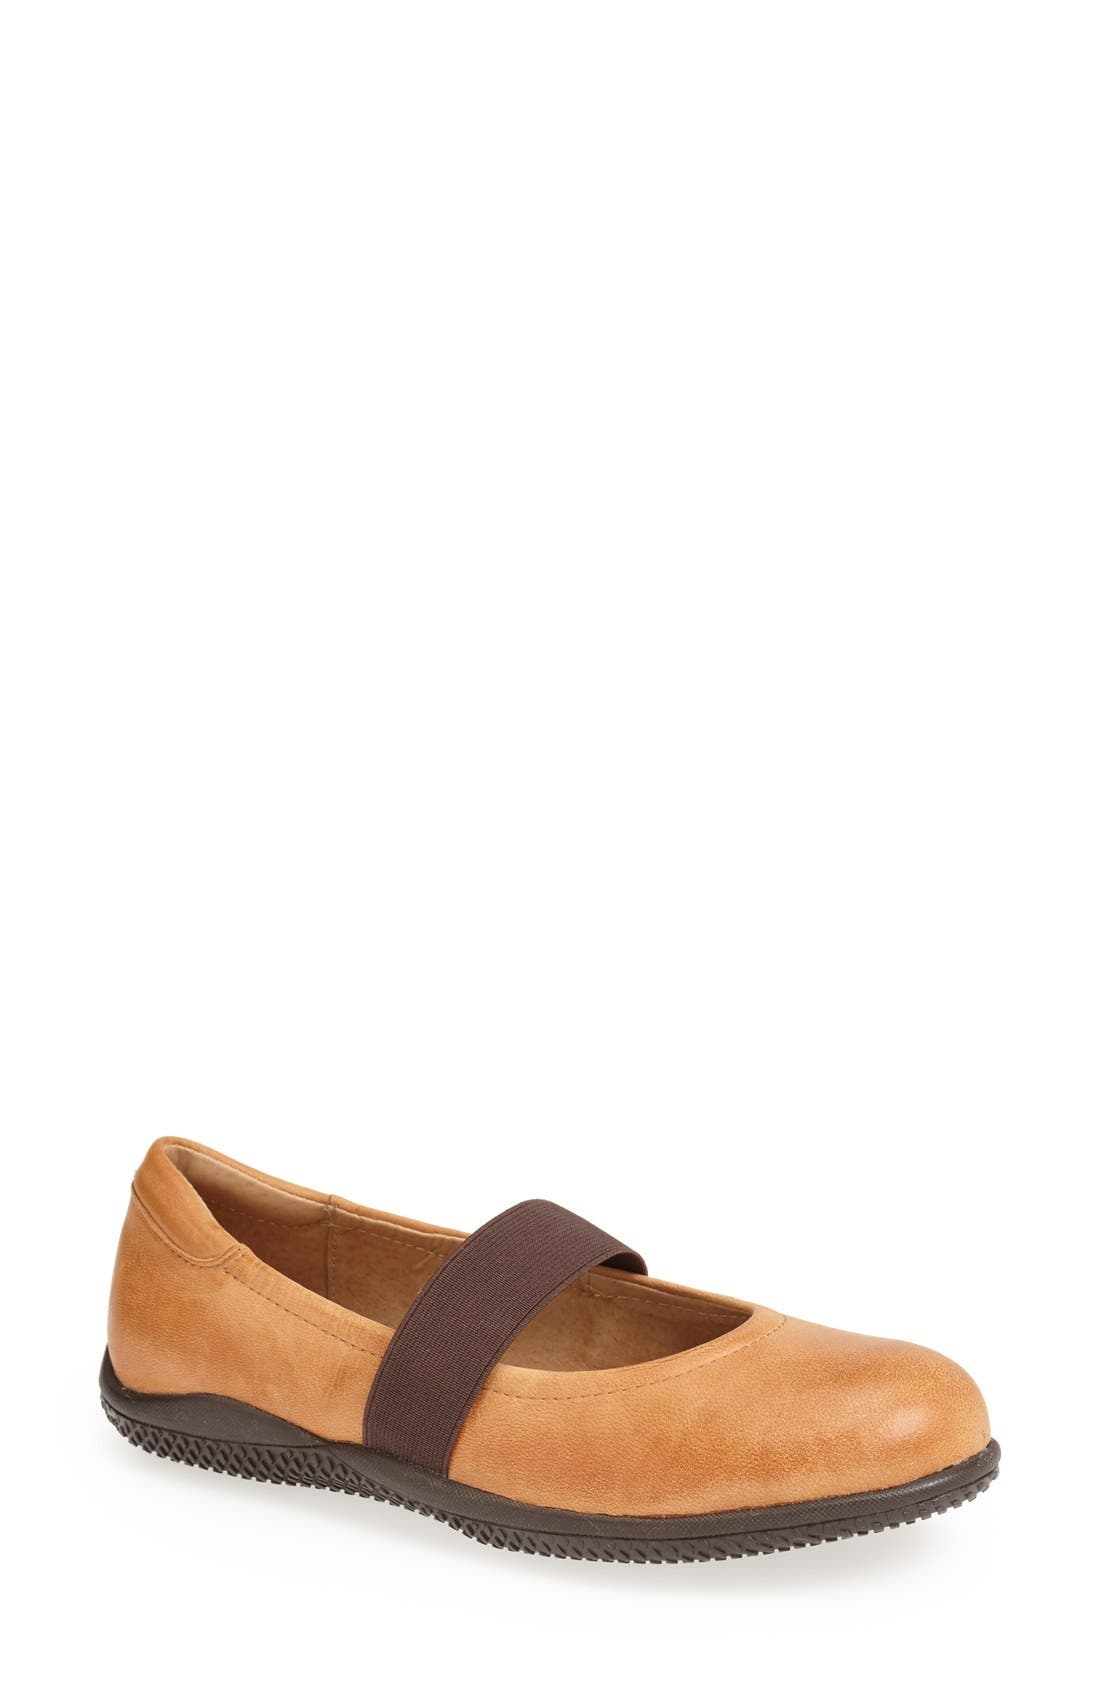 Main Image - SoftWalk® 'High Point' Mary Jane Flat (Women)